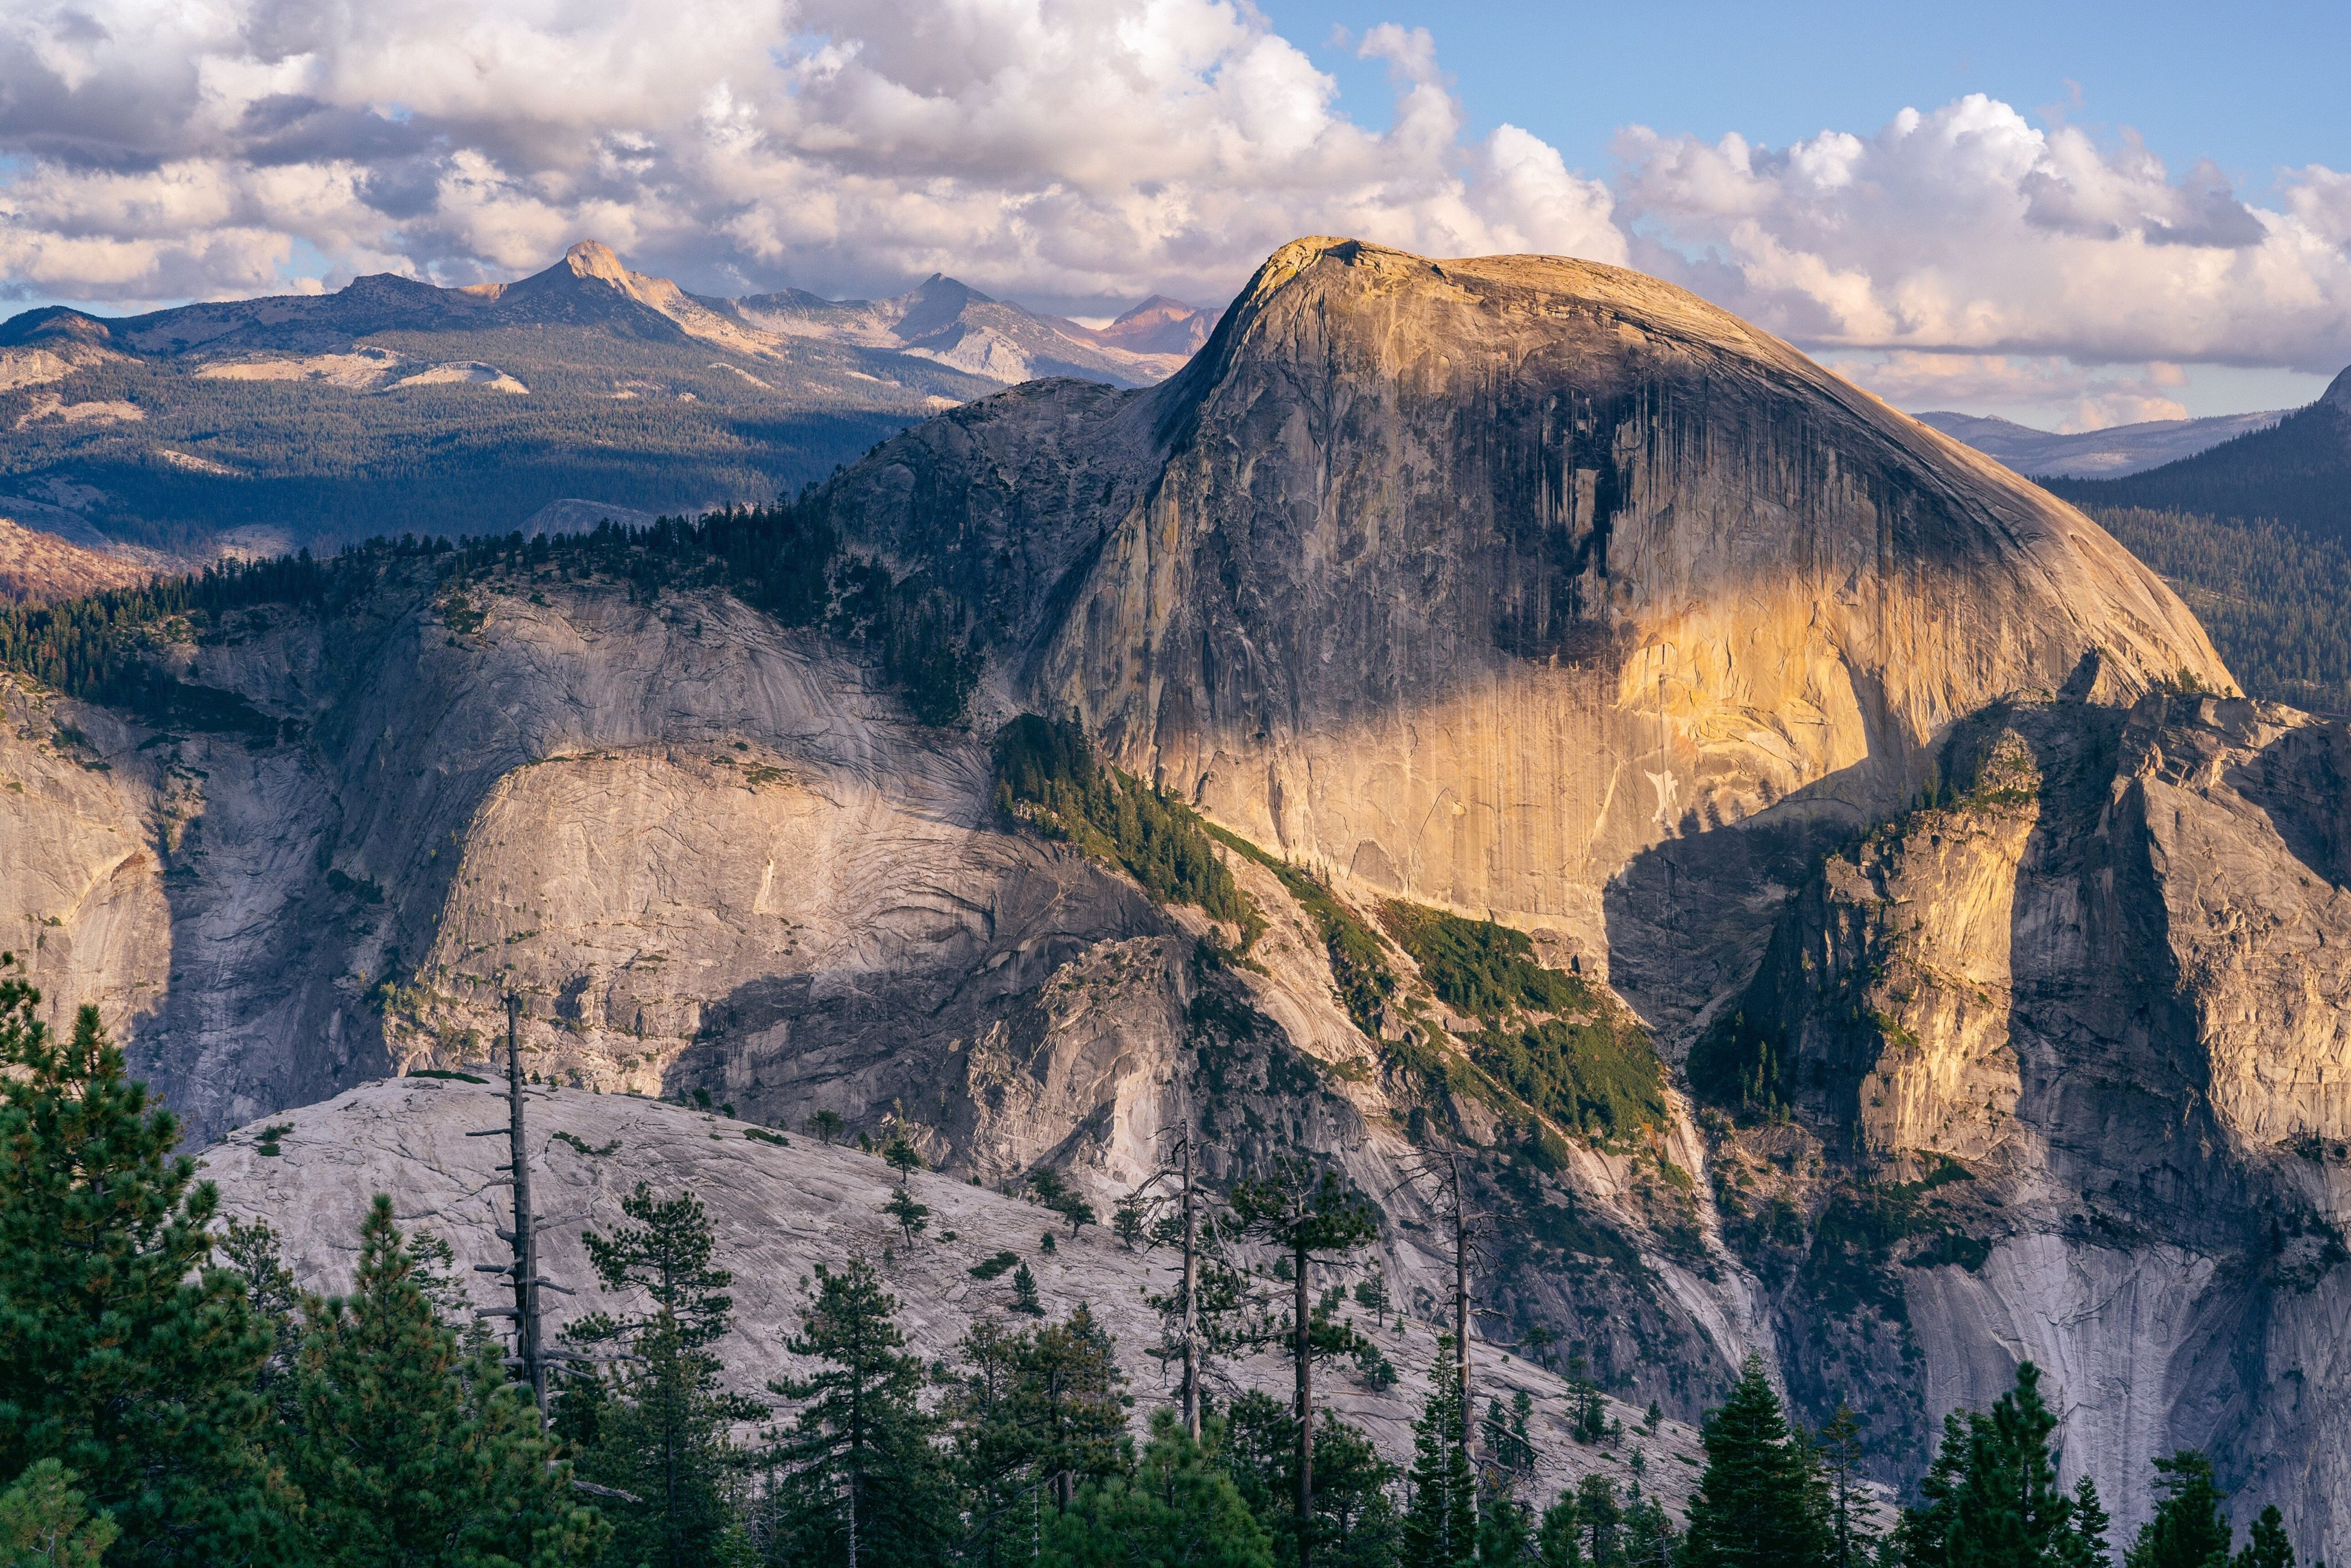 mountain, sky, tranquil scene, tranquility, scenics, landscape, rock formation, beauty in nature, nature, geology, physical geography, cloud - sky, rock - object, mountain range, non-urban scene, cloud, remote, idyllic, cliff, rocky mountains